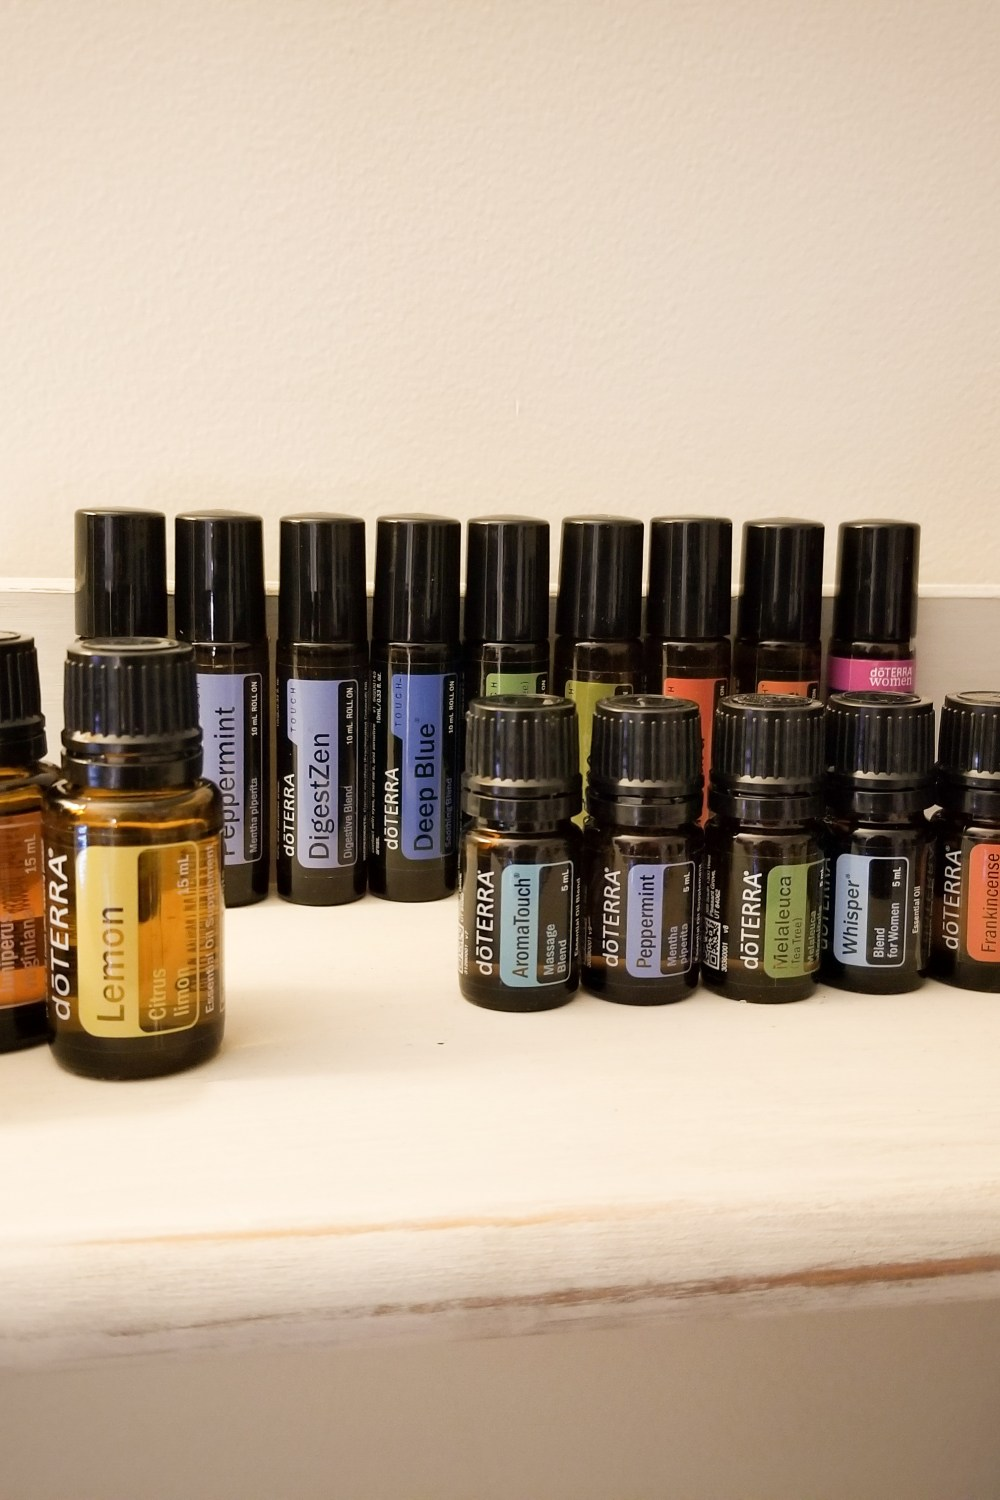 Mama of Both Worlds: Essential Oils